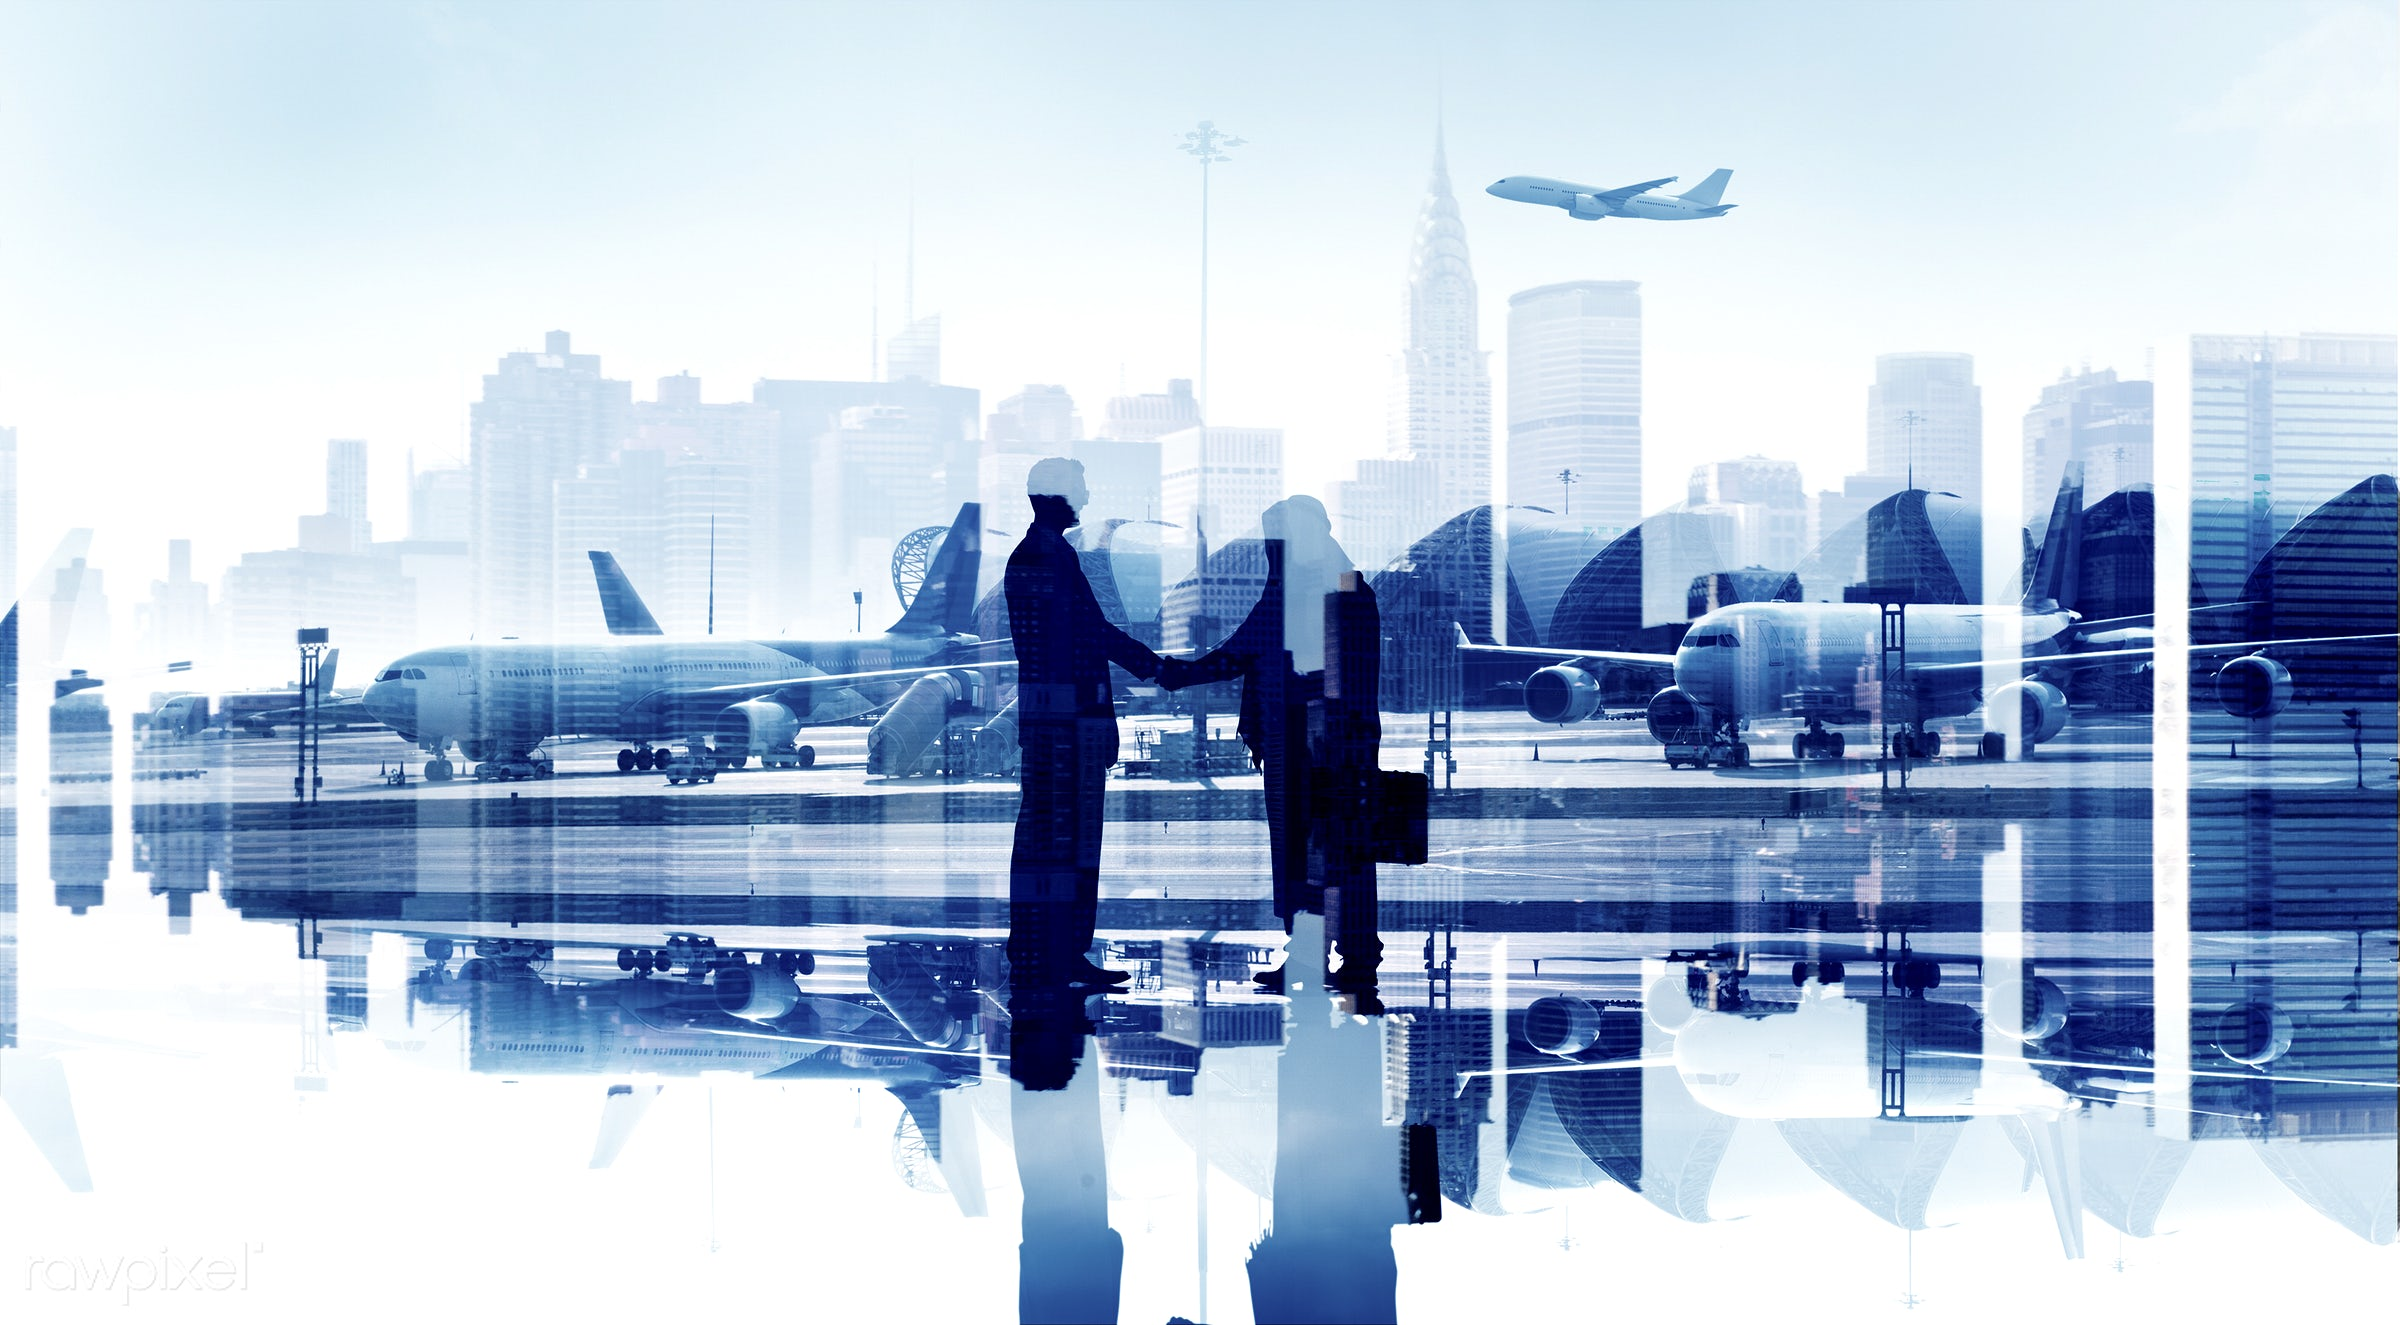 abstract, agreement, aircraft, airplane, airport, business, business people, business travel, business trip, businessmen,...